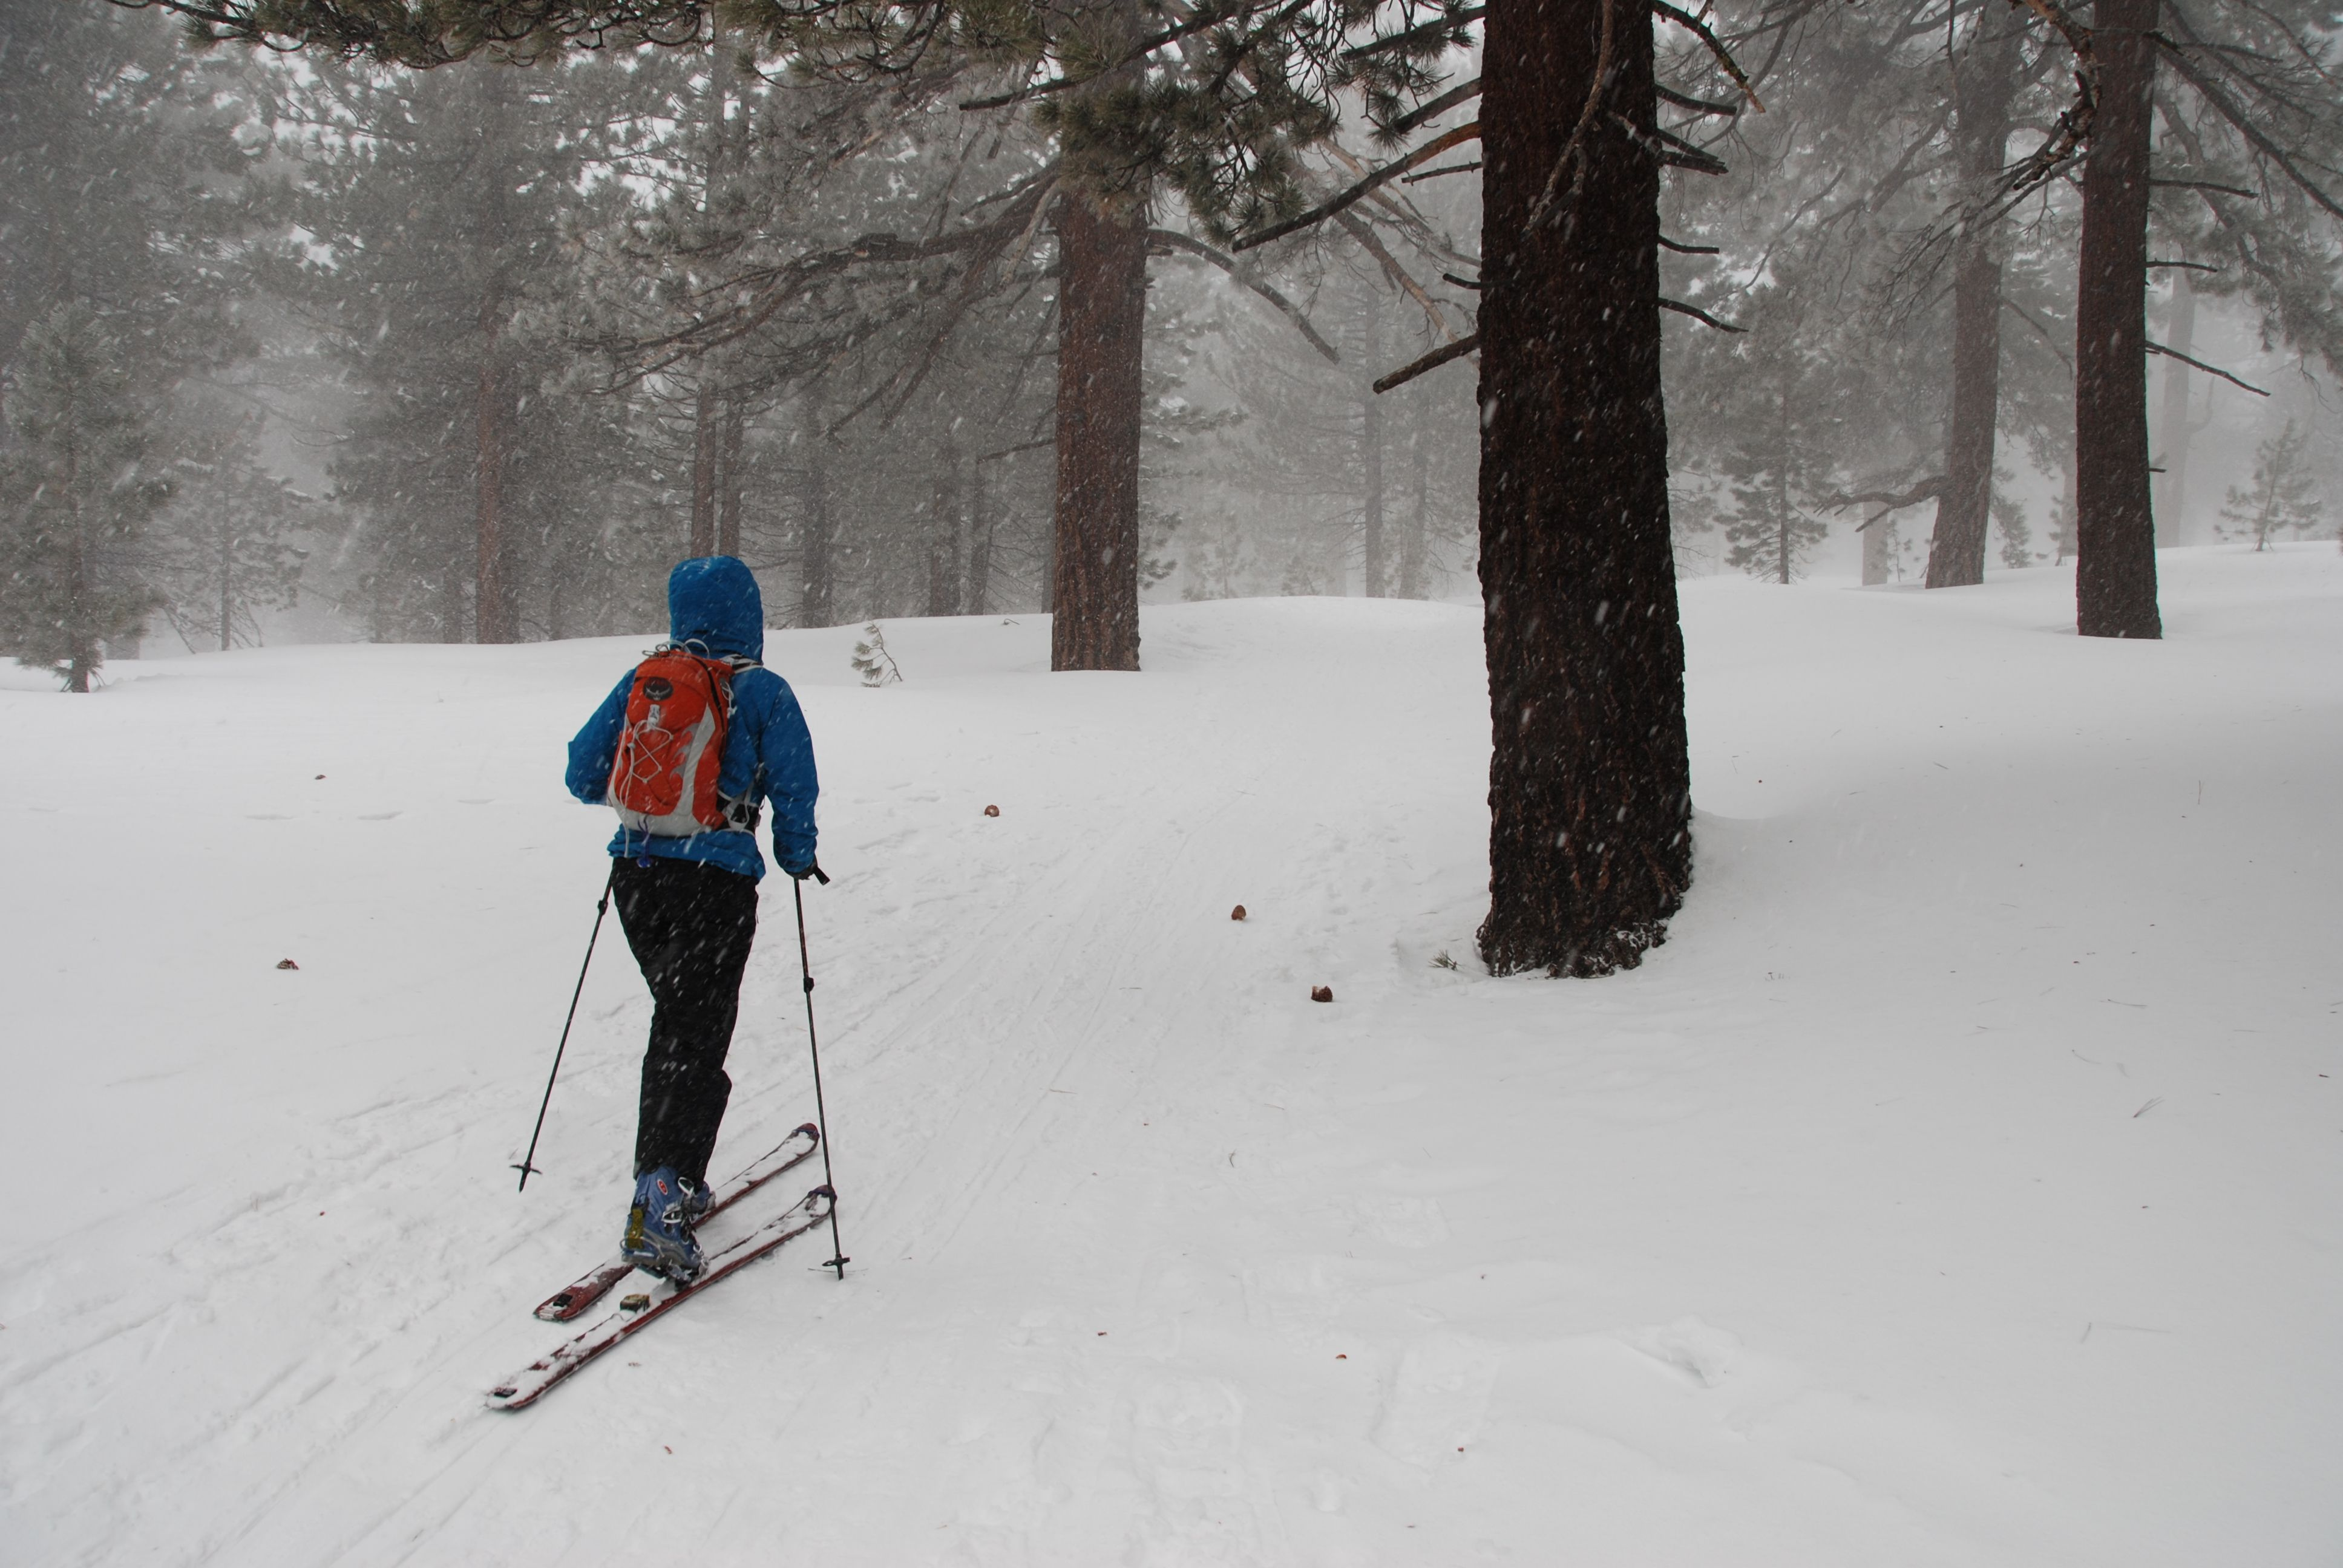 Mt Pinos Cross Country Skiing Snowshoeing Snow Play Frazier Park Cross Country Skiing Skiing